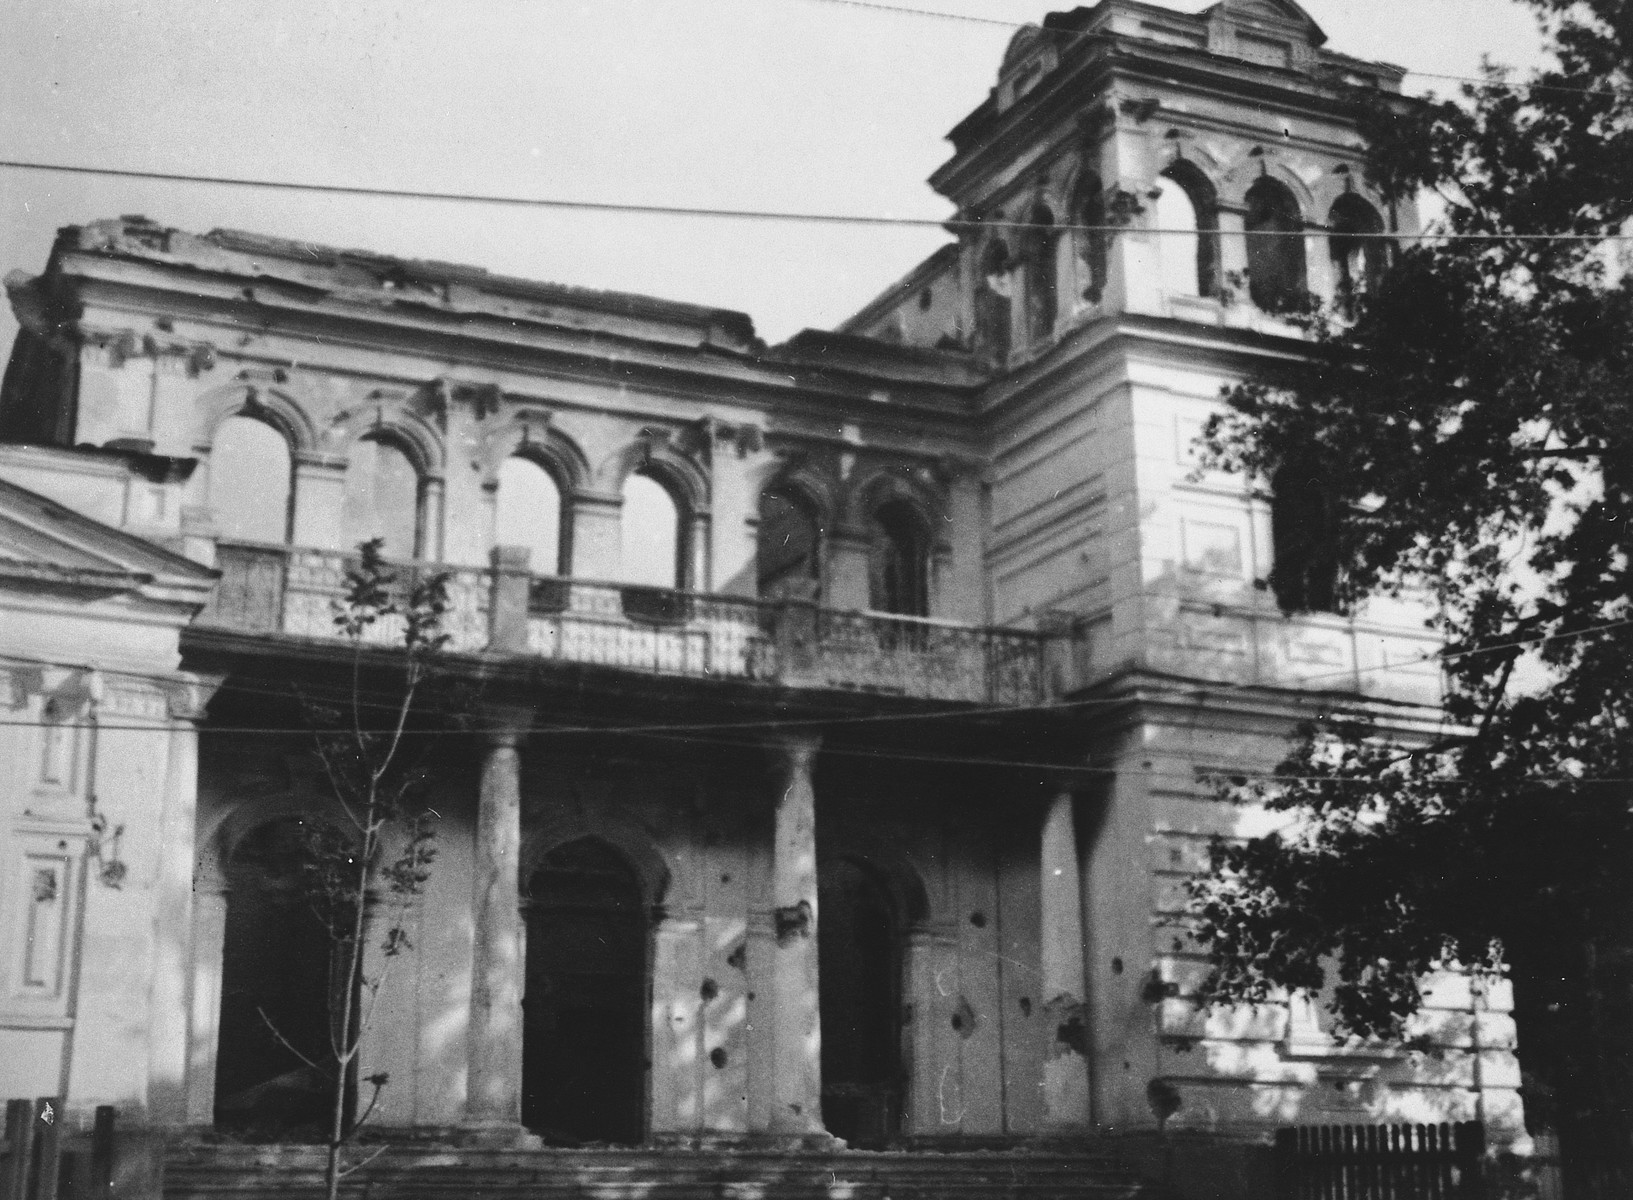 Exterior view of a large war-damaged building in the Warsaw ghetto.